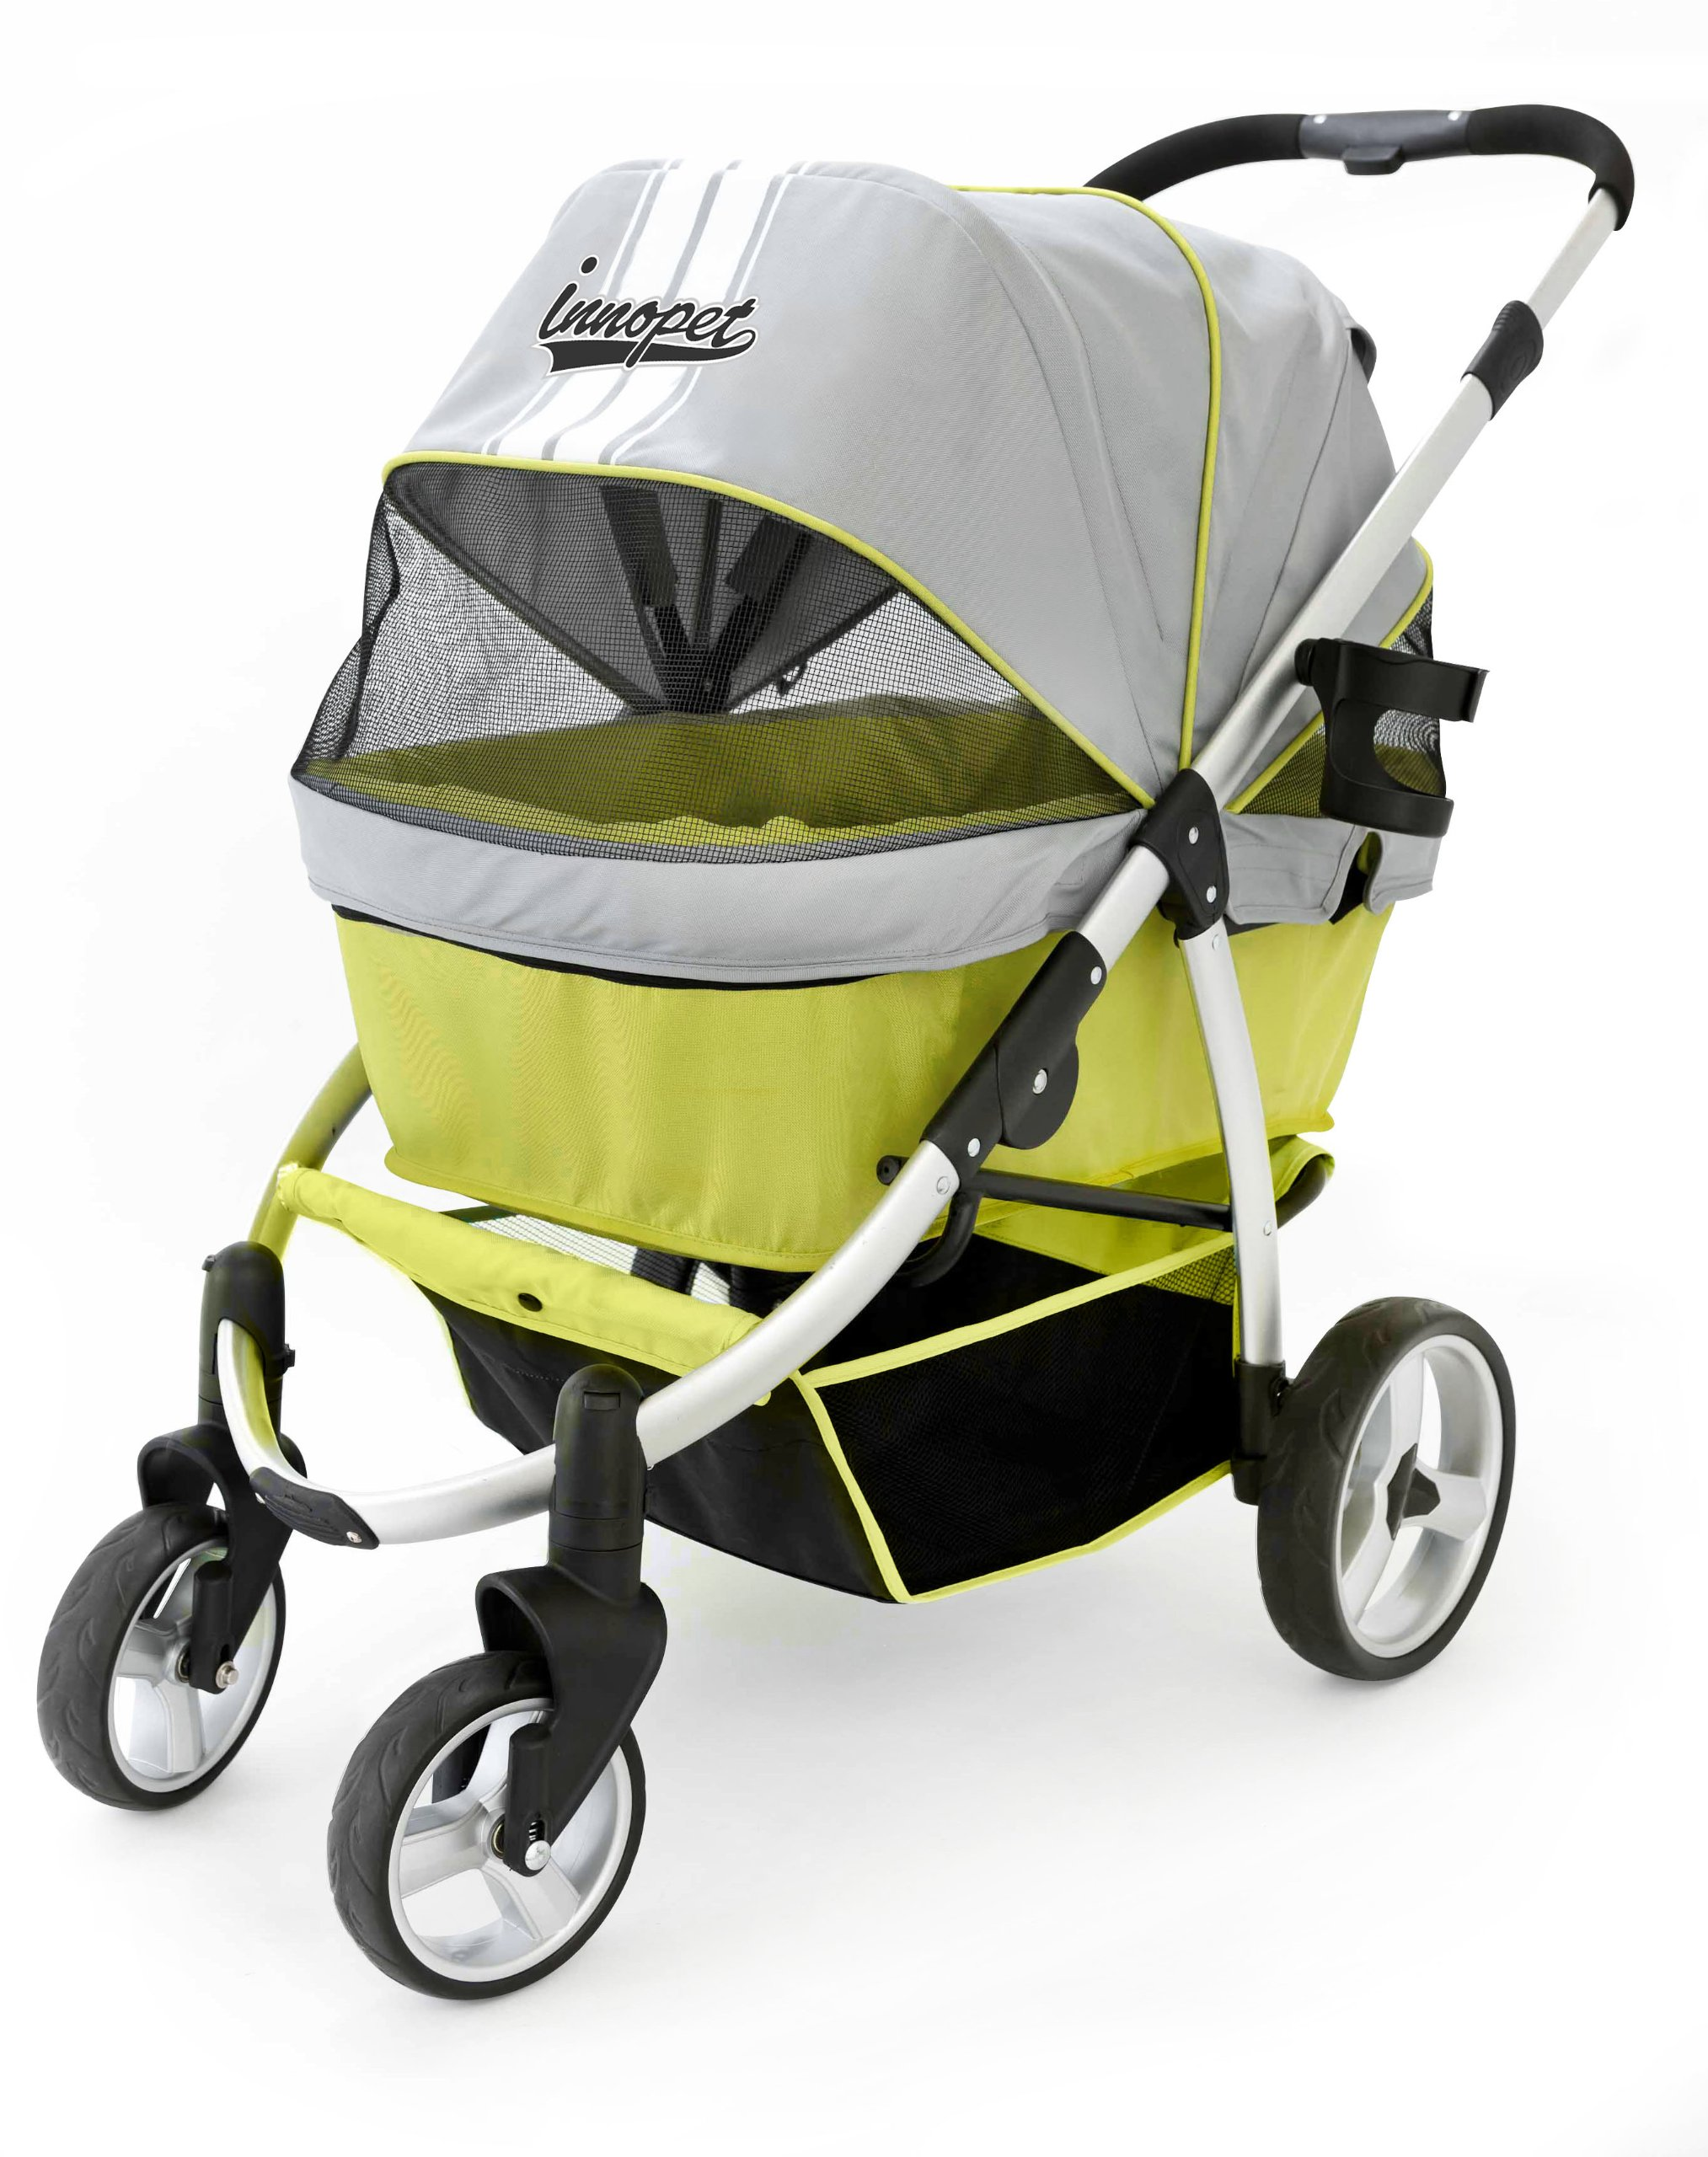 InnoPet Pet Stroller, IPS-06/Green, Dog Carrier, Trolley, Trailer, Buggy Retro. Foldable pet Buggy, Pushchair, pram for Dogs and Cats